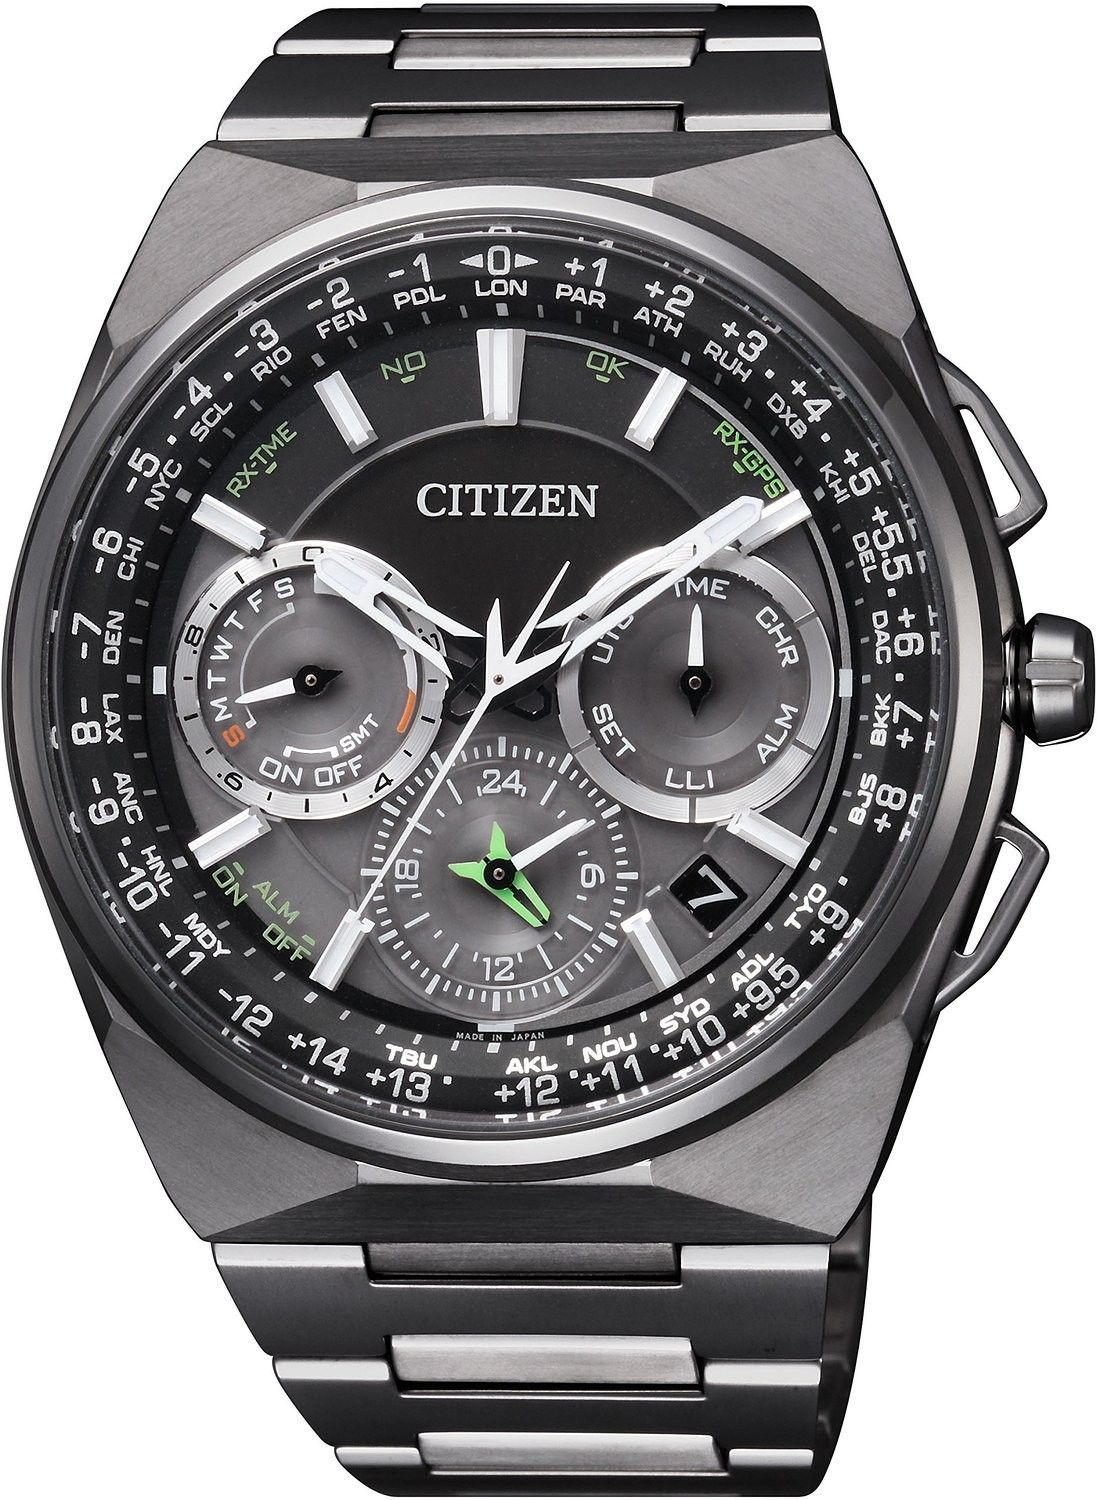 ce2151e0472 Buy Authentic Citizen Eco-Drive Satellite Wave World Time F900 Sapphire  Japan Watch CC9004-51E. FREE Worldwide Shipping! 20